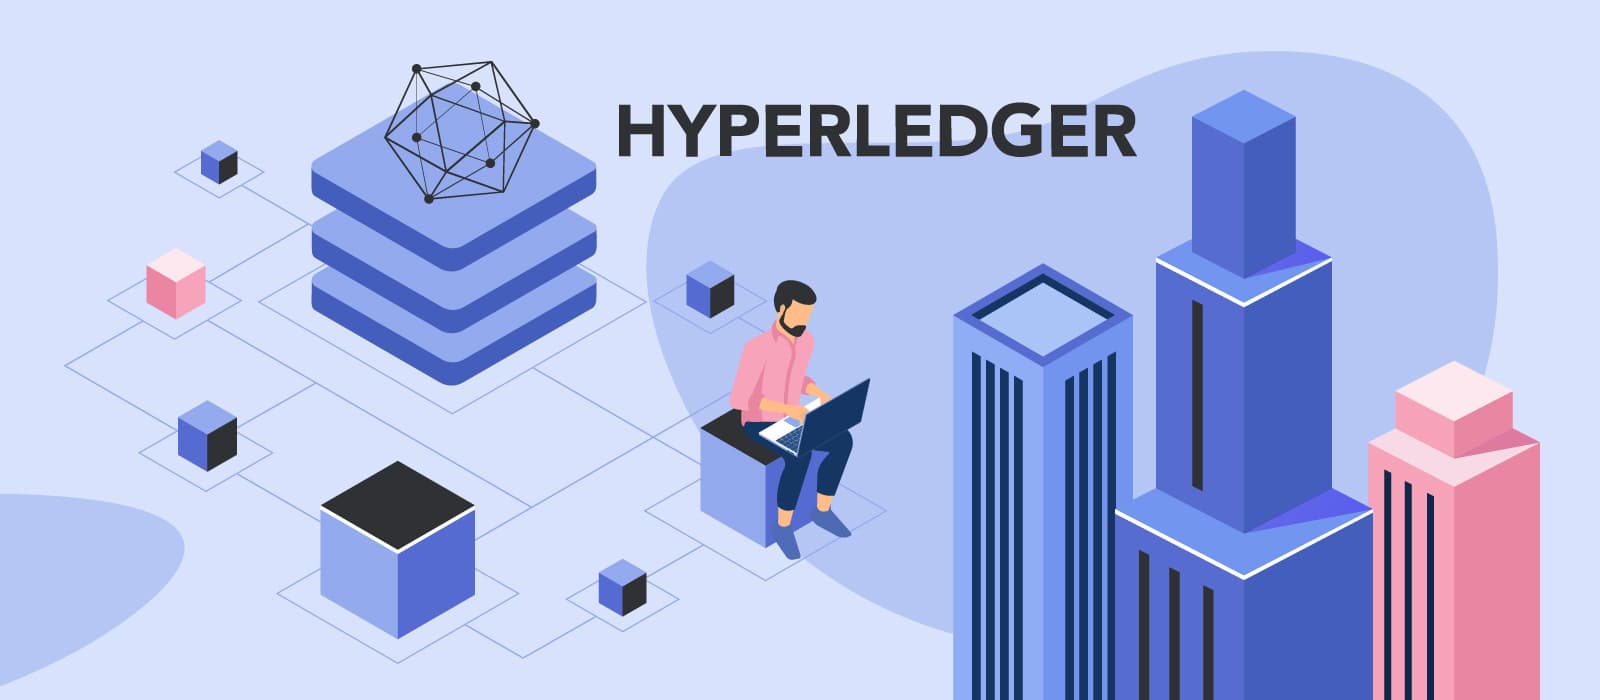 What You Need to Know About Hyperledger